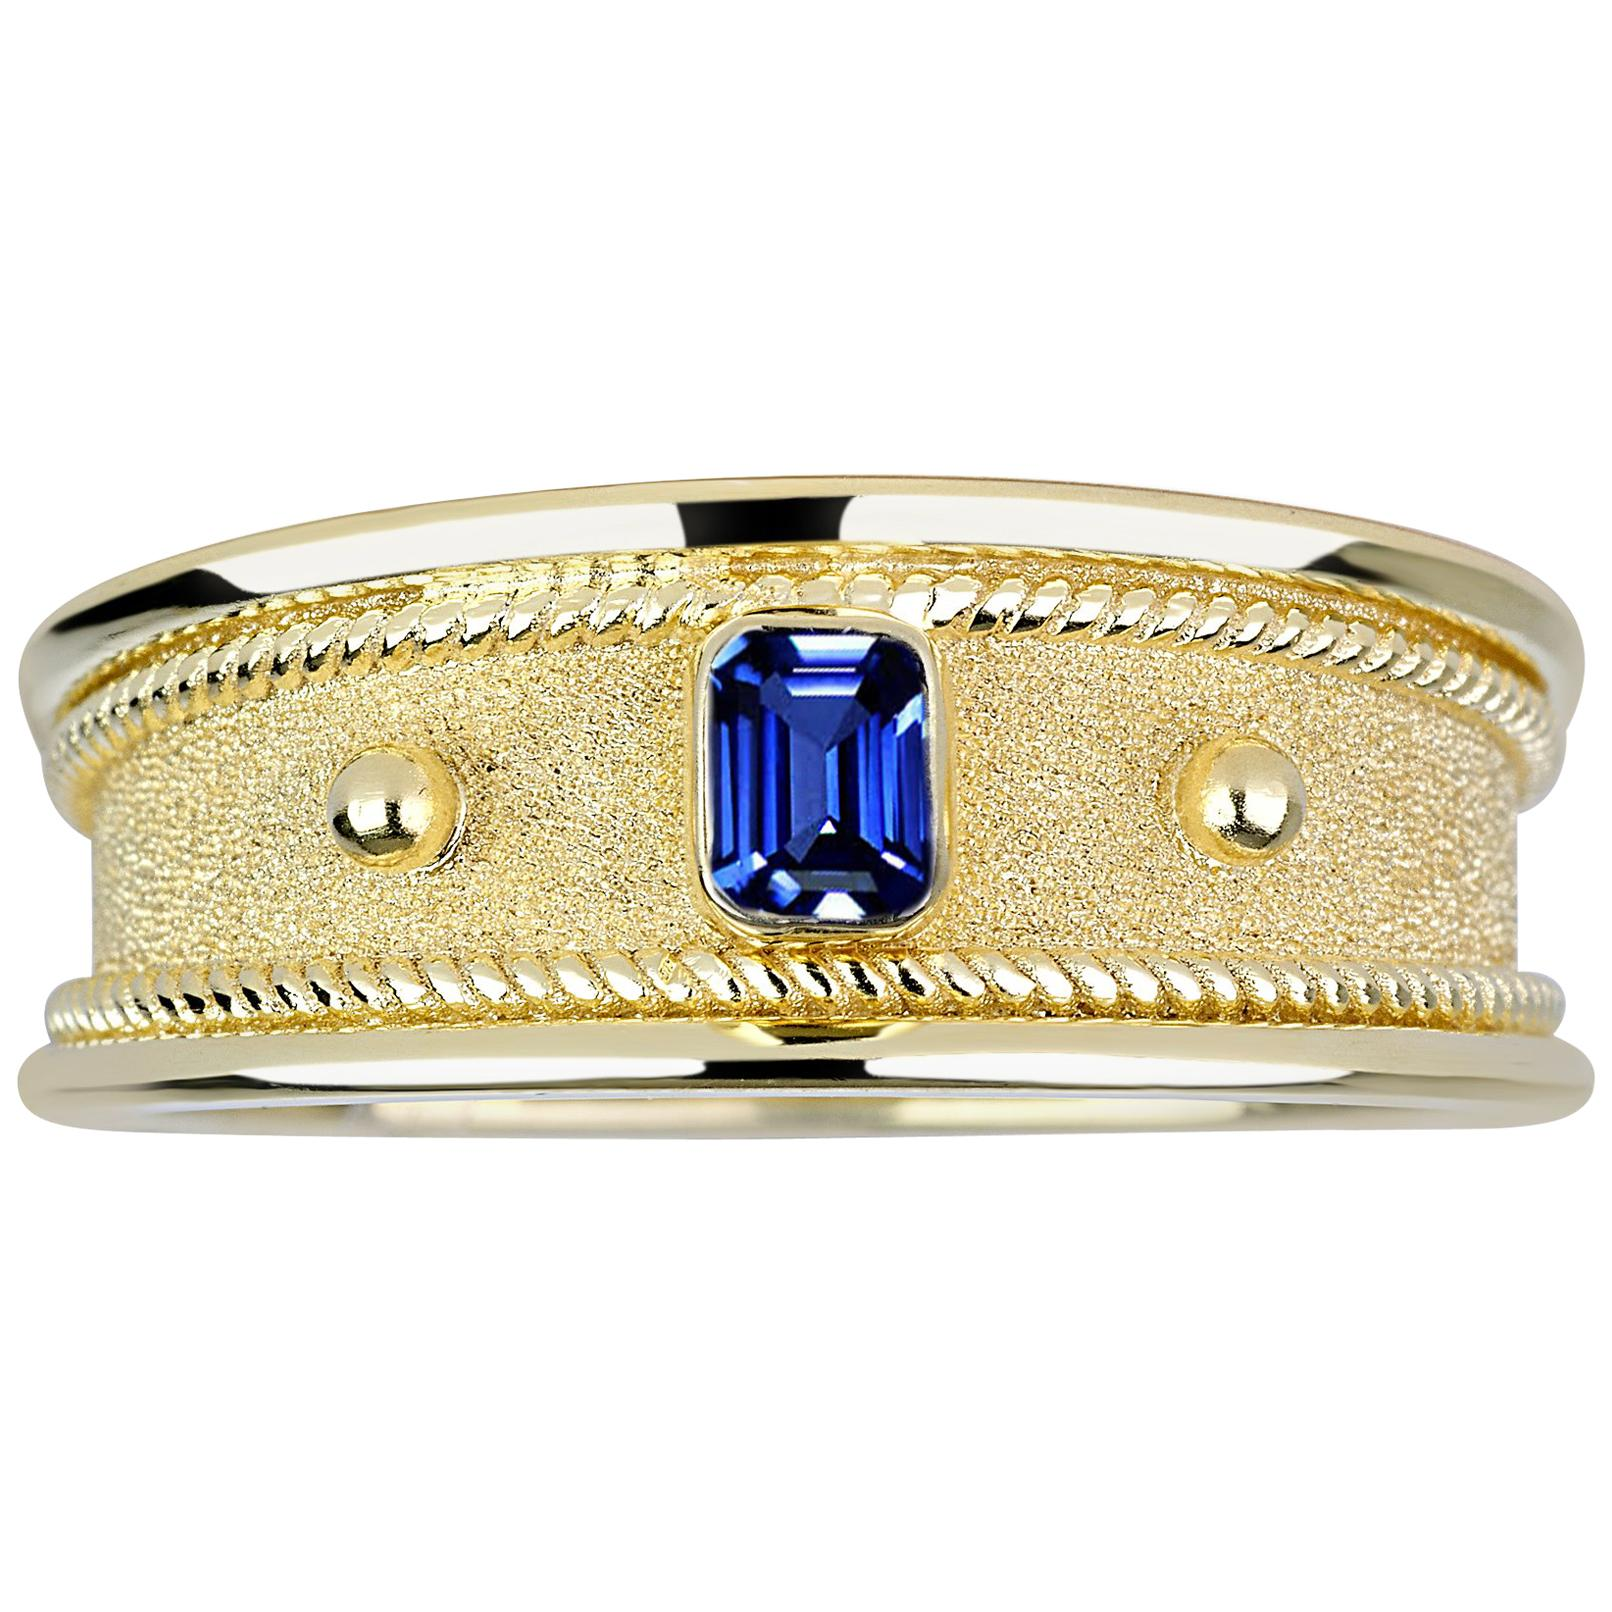 Georgios Collections 18 Karat Yellow Gold Unisex Ring with Emerald Cut Sapphire